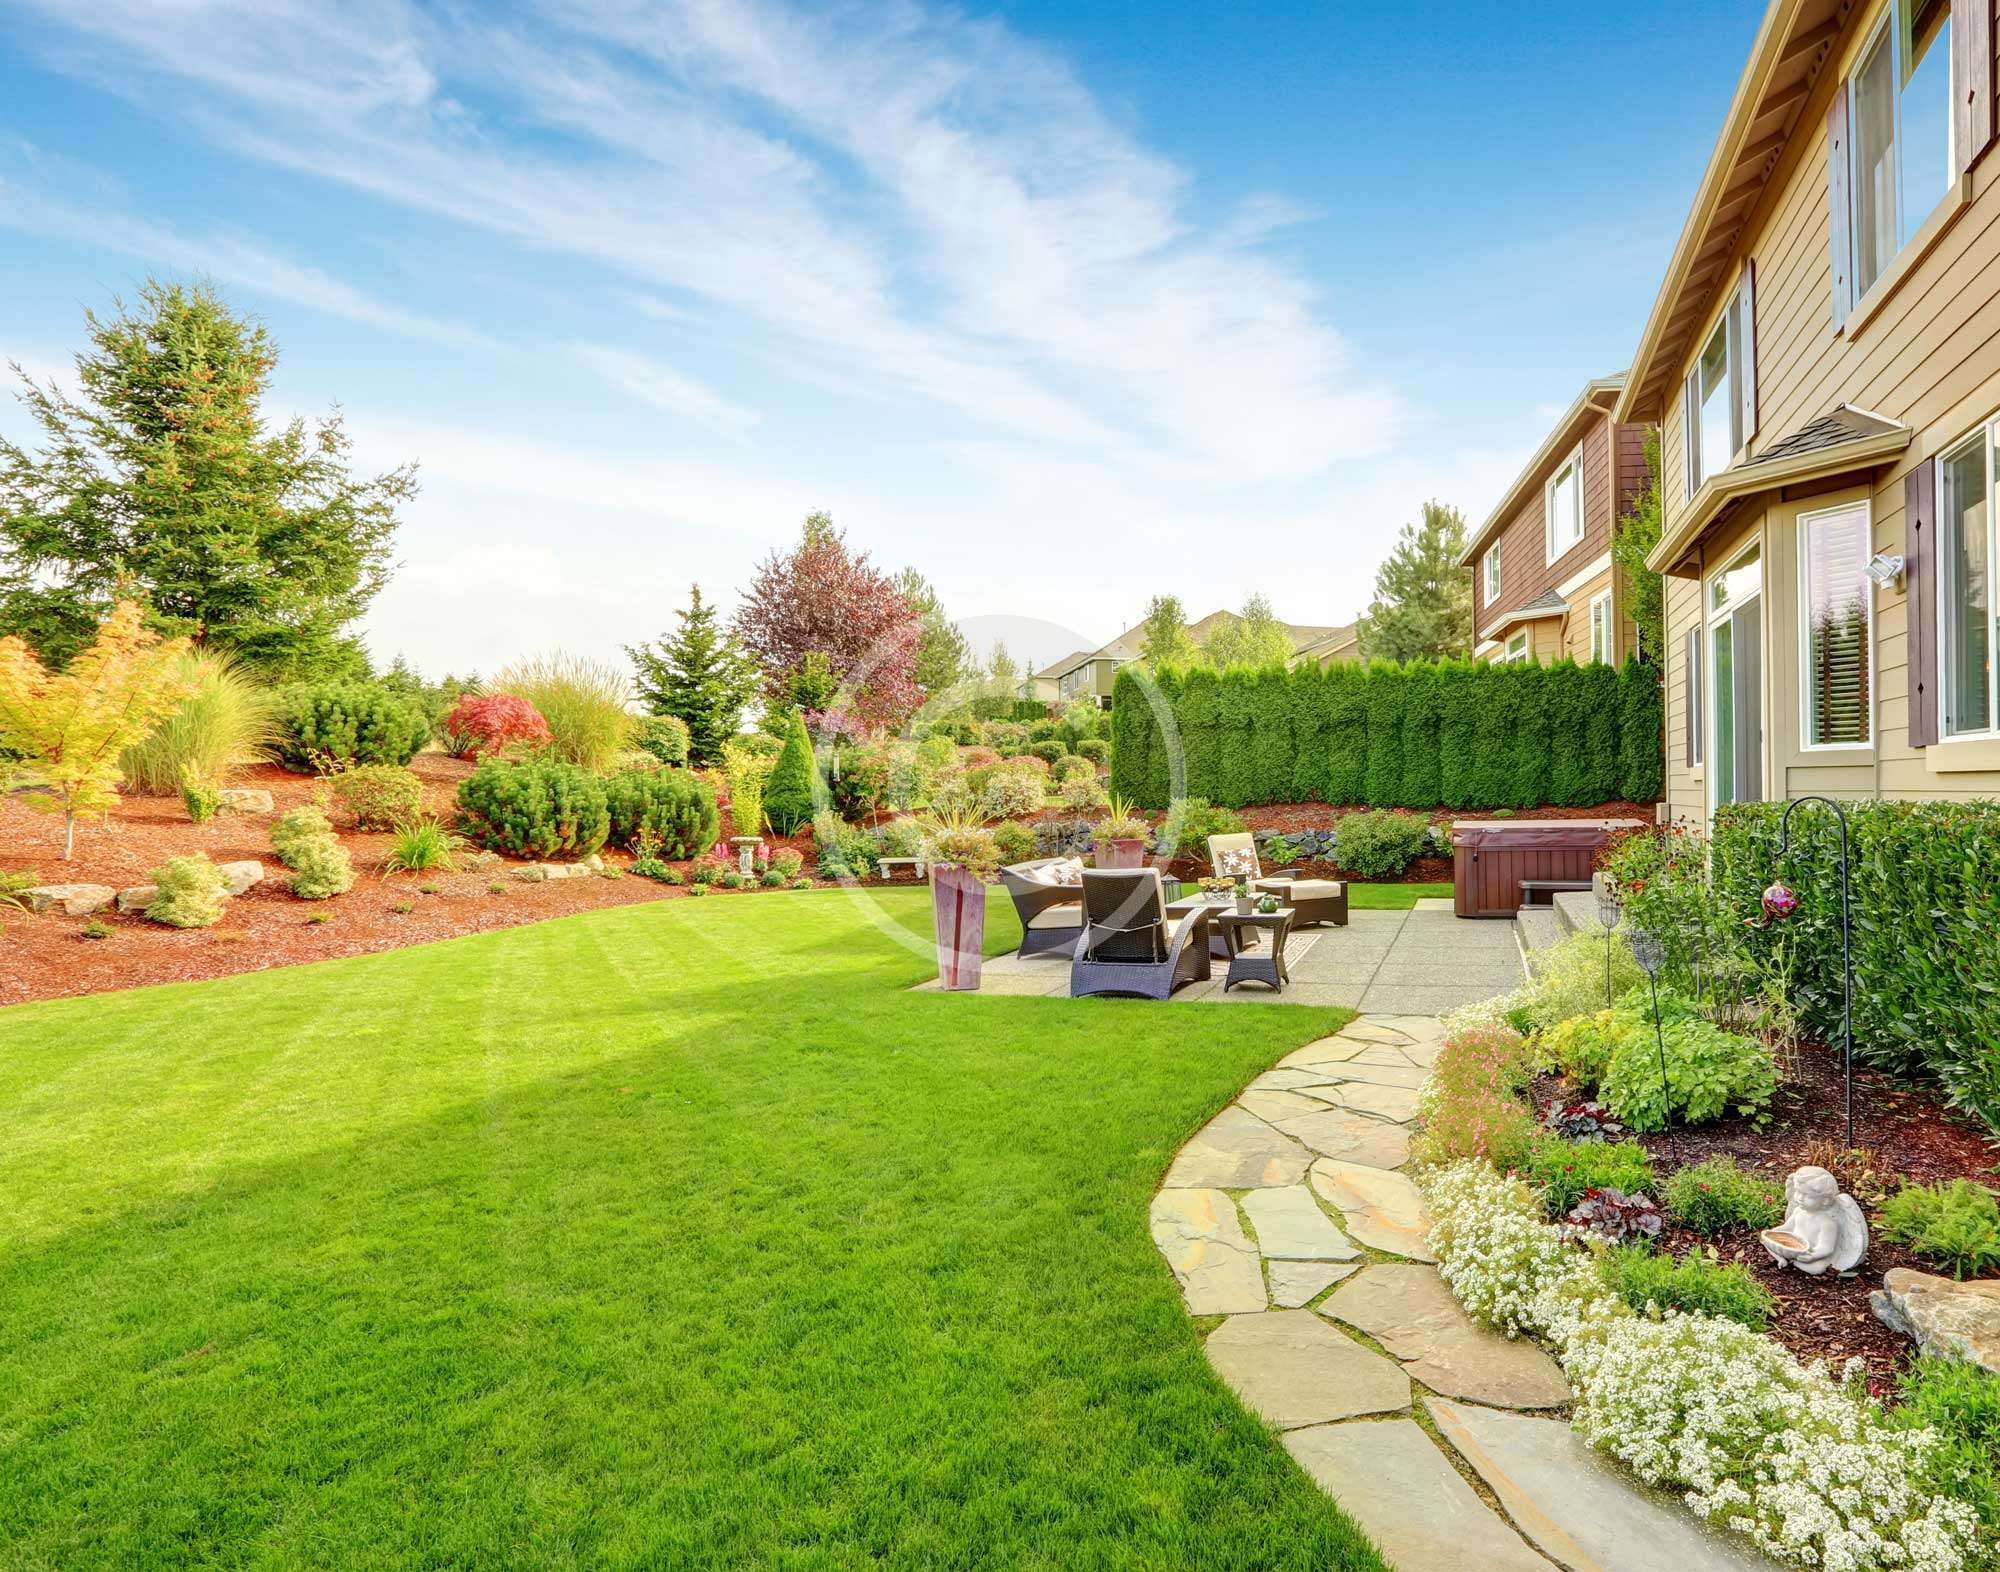 How to Furnish Your Backyard